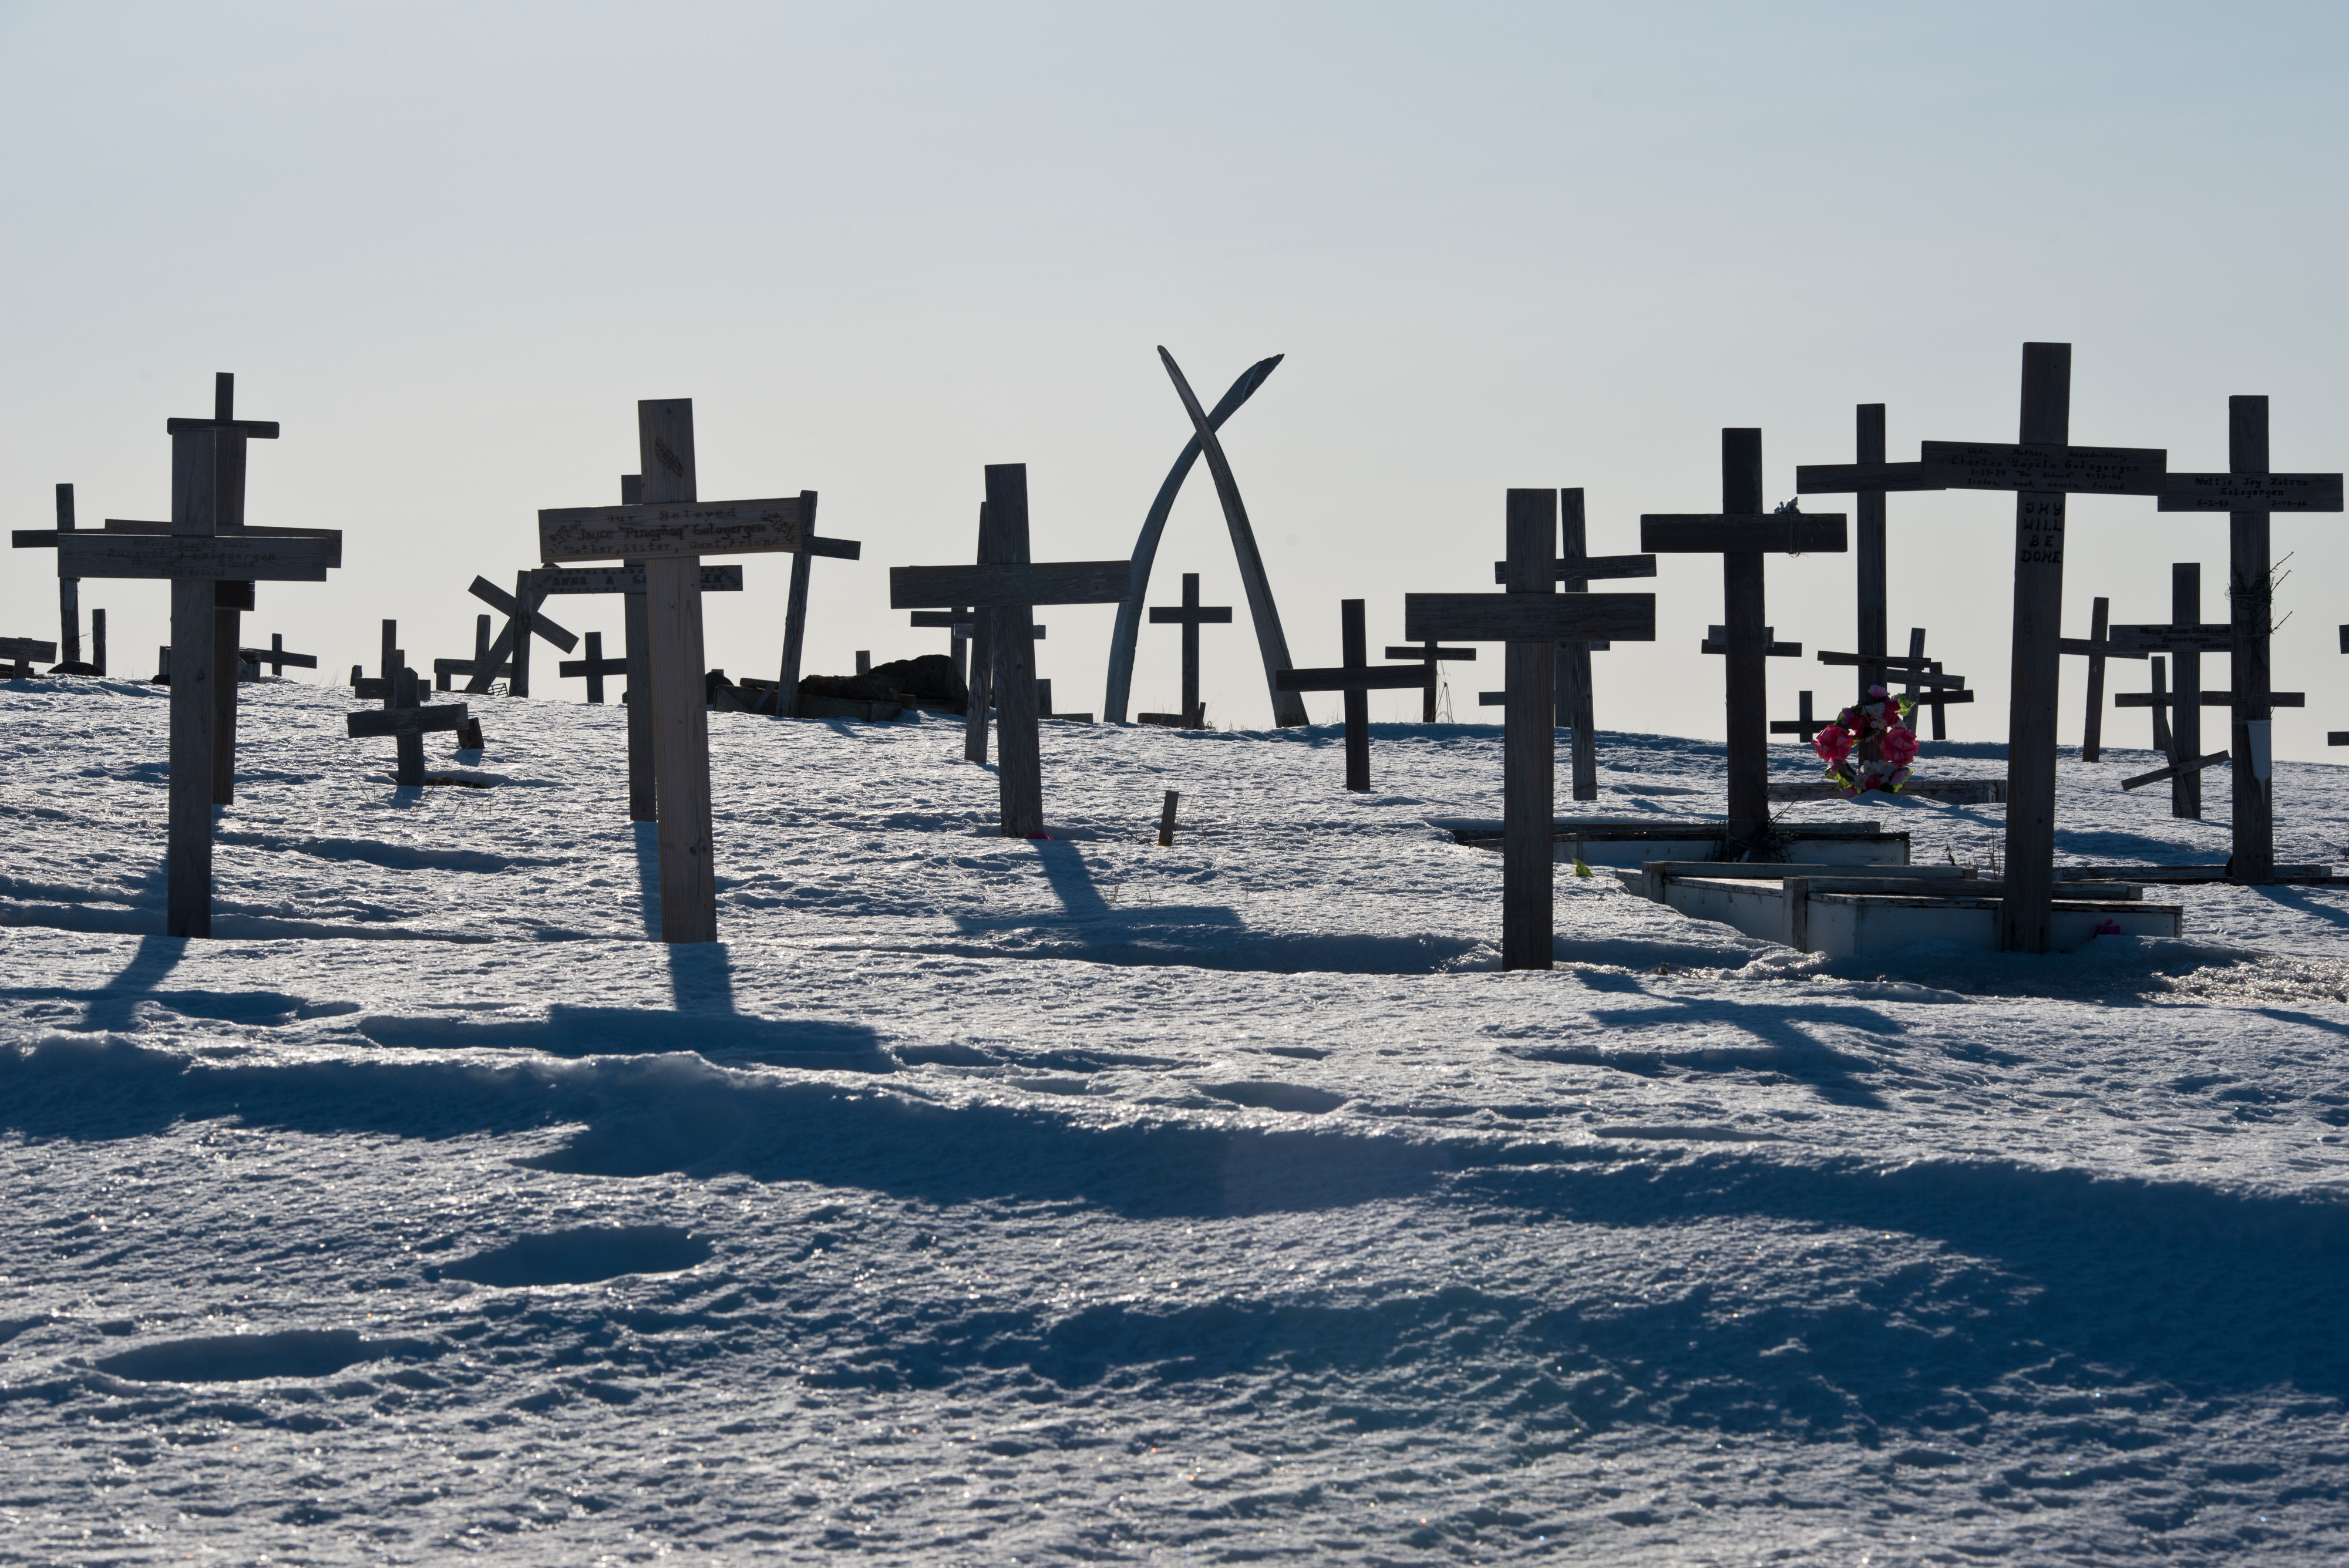 Whale bones create an archway over crosses at the Savoonga cemetery on April 20, 2017. (Marc Lester / Alaska Dispatch News)